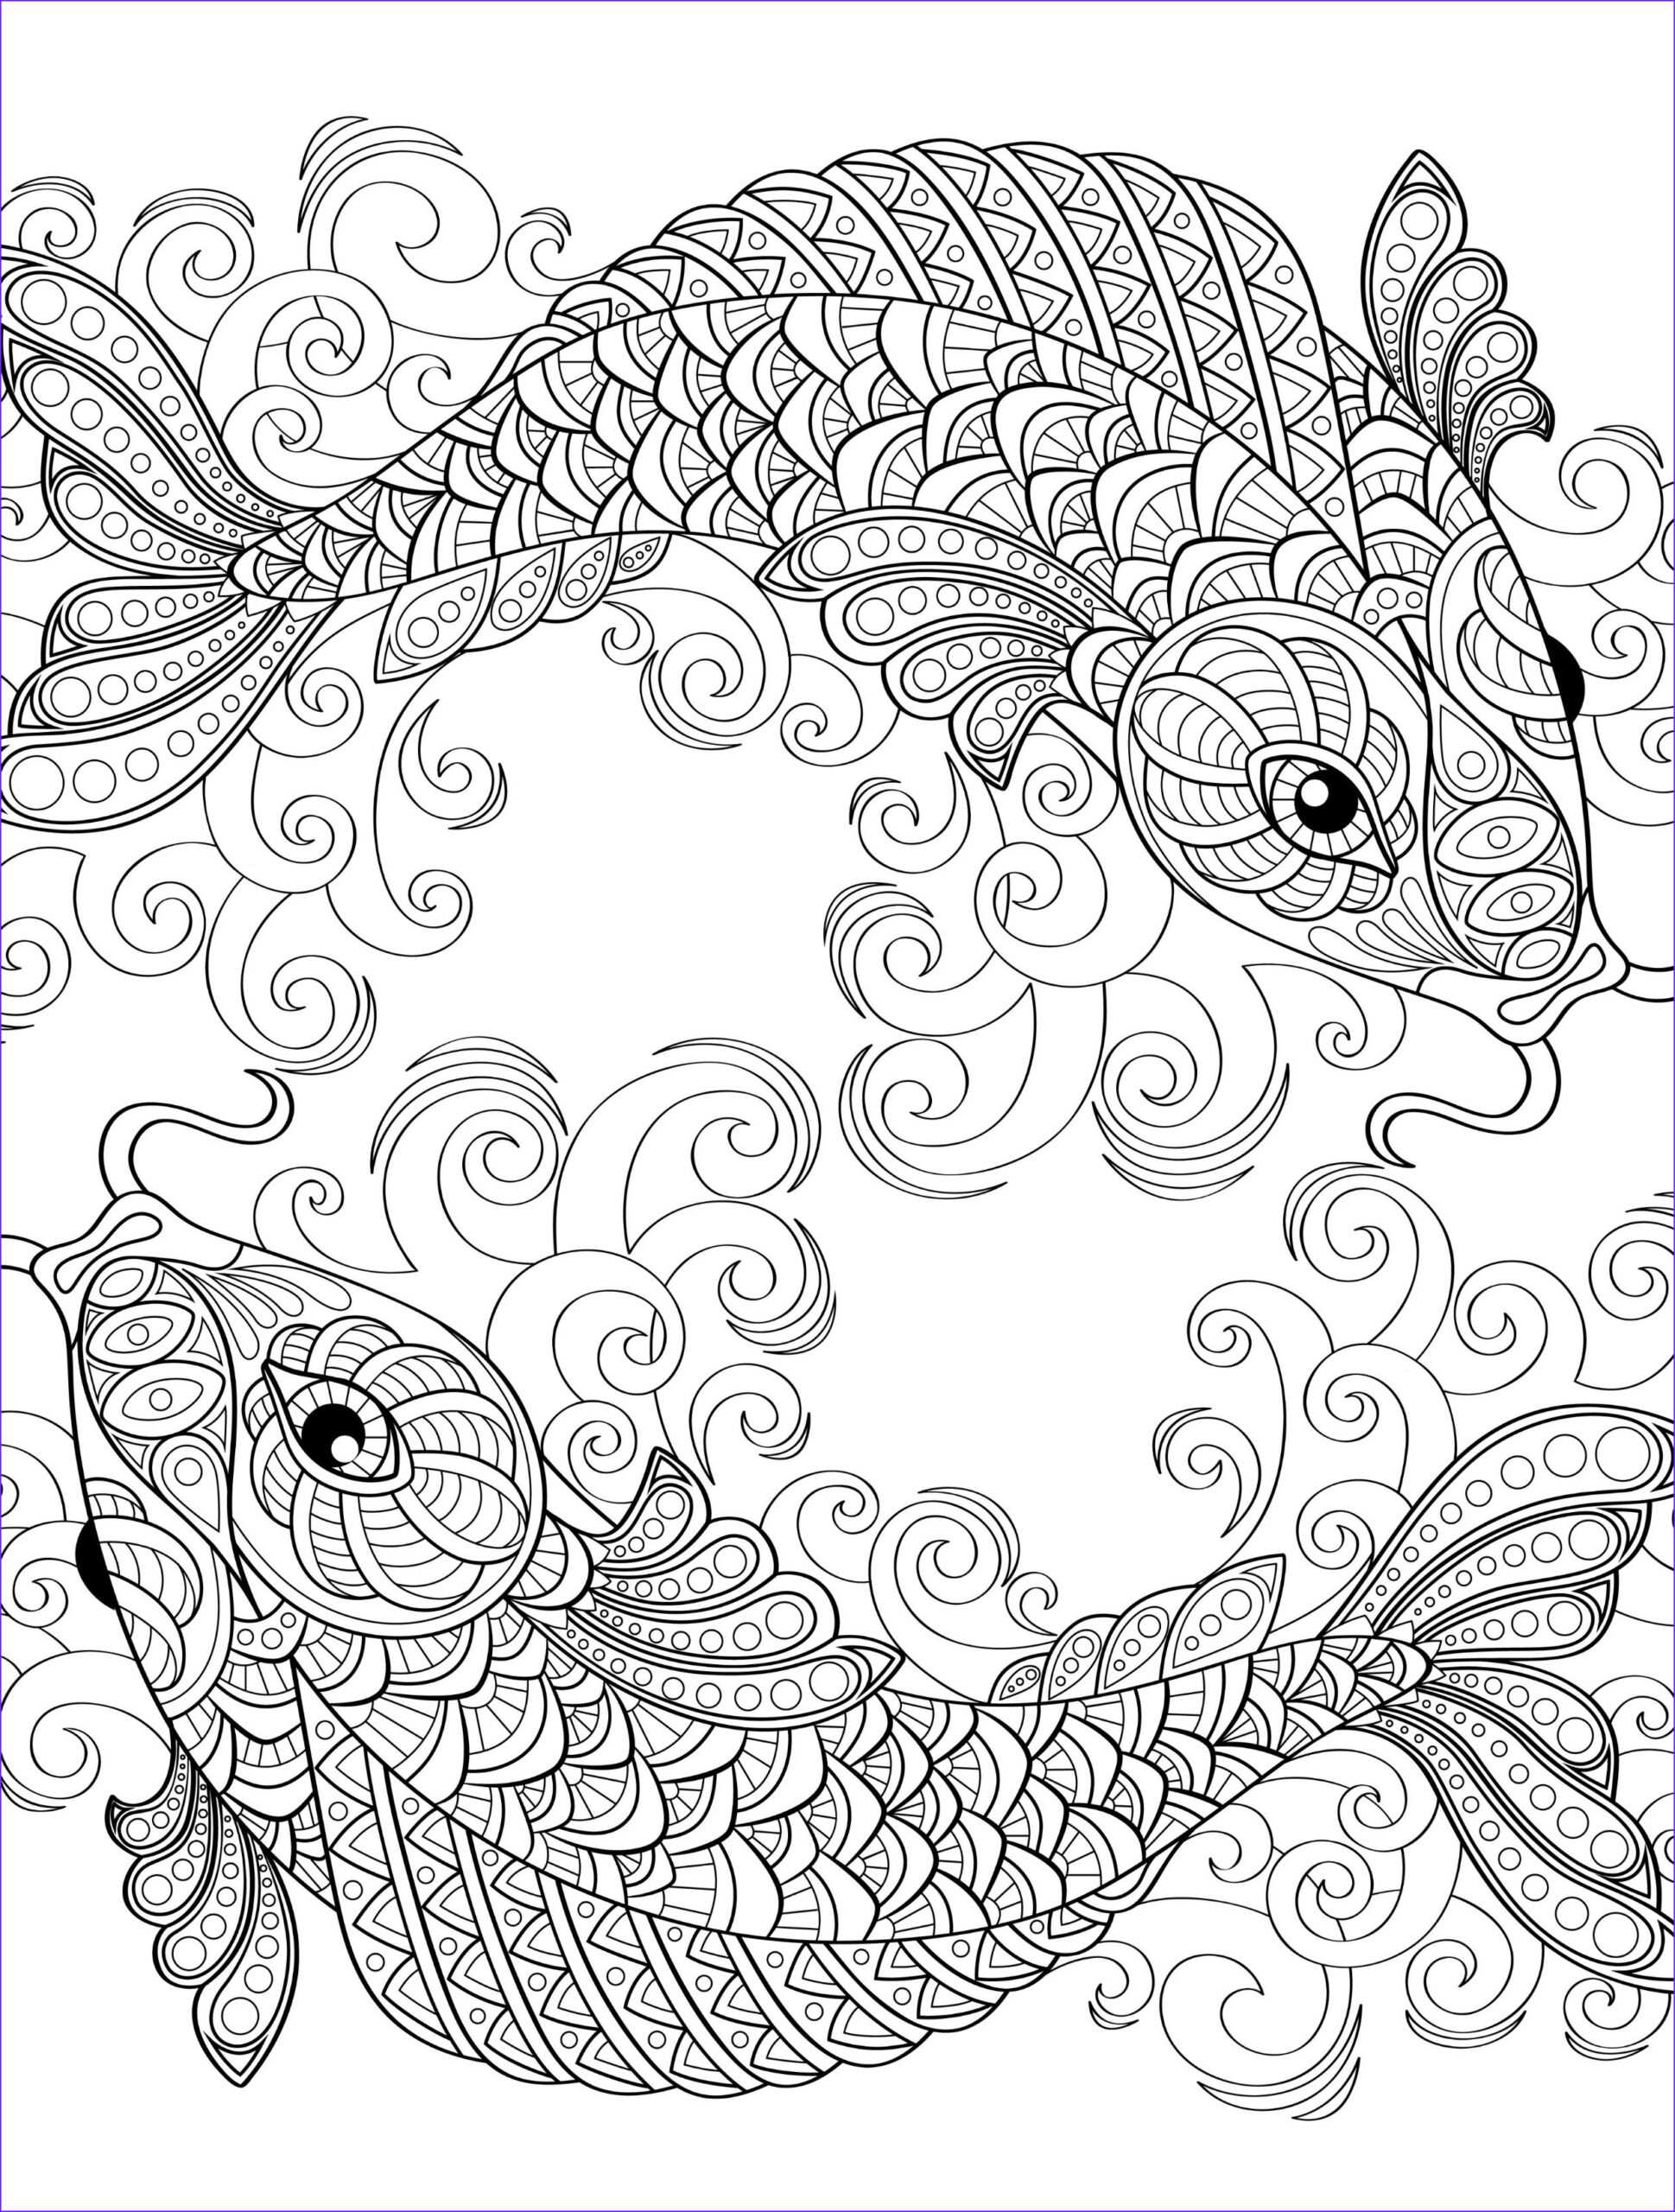 Coloring Book Adults New Gallery 18 Absurdly Whimsical Adult Coloring Pages